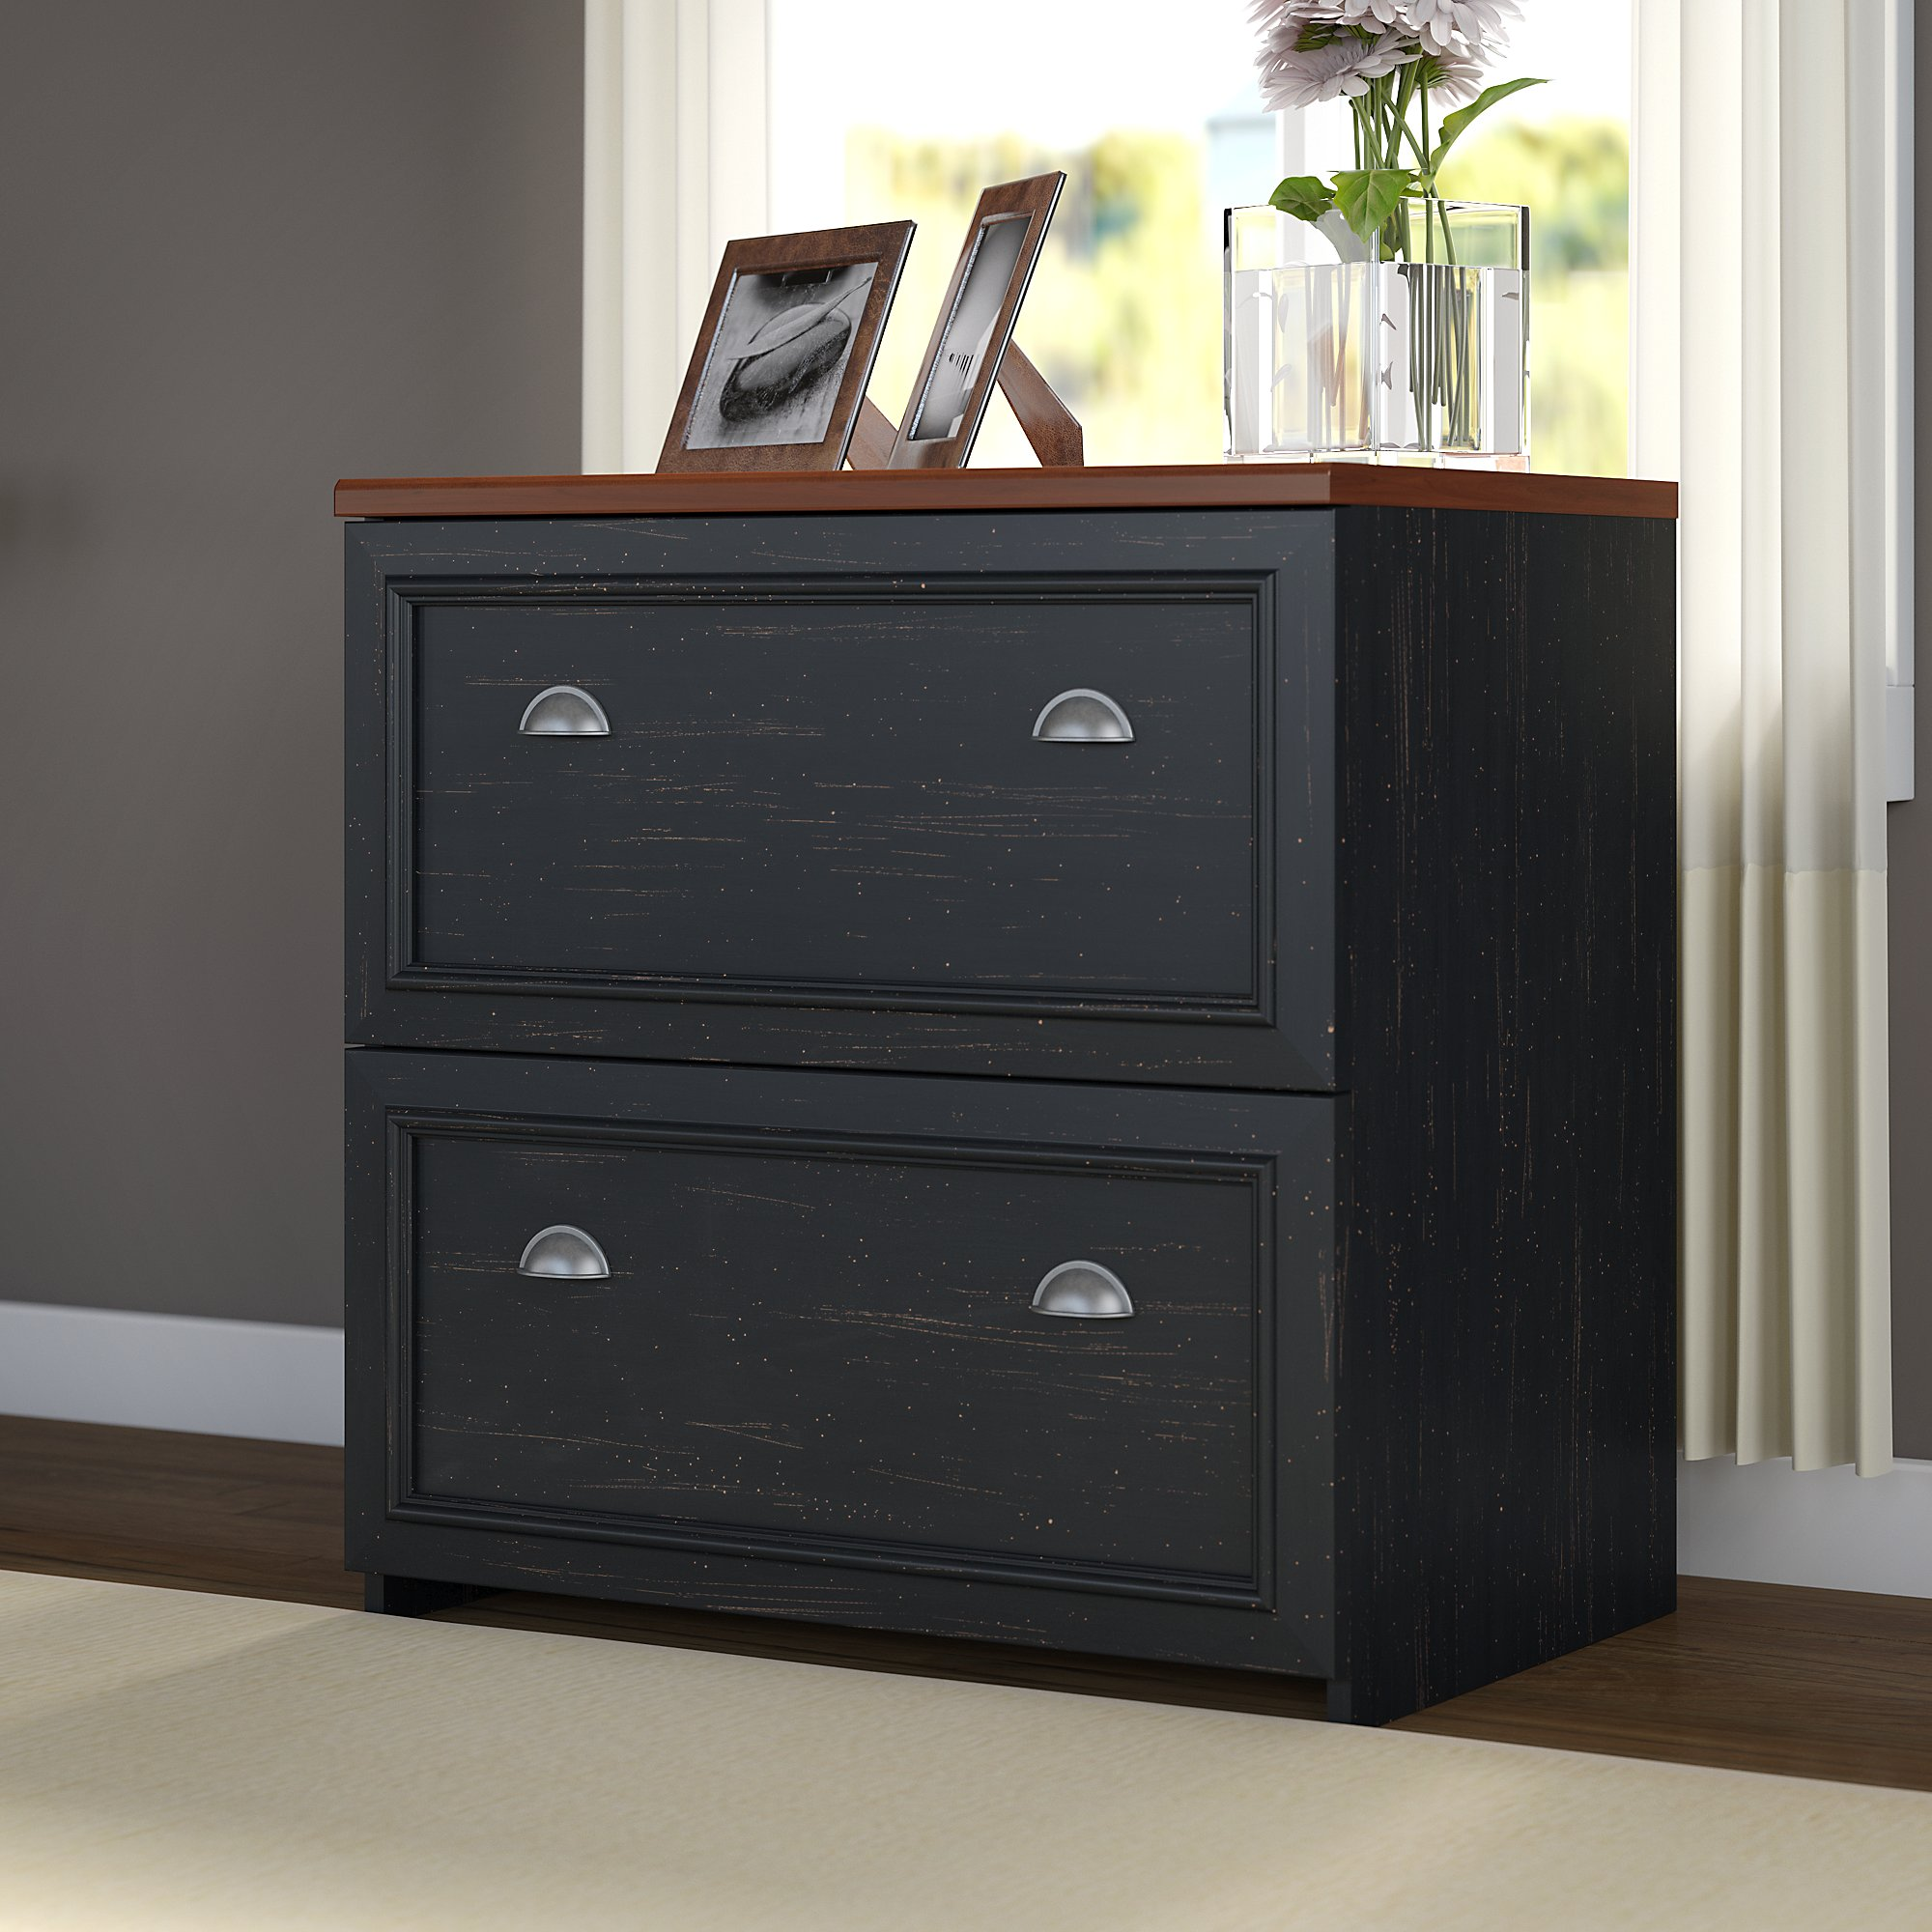 Lovely Bush Furniture Fairview Lateral File Cabinet In Antique Black   Walmart.com